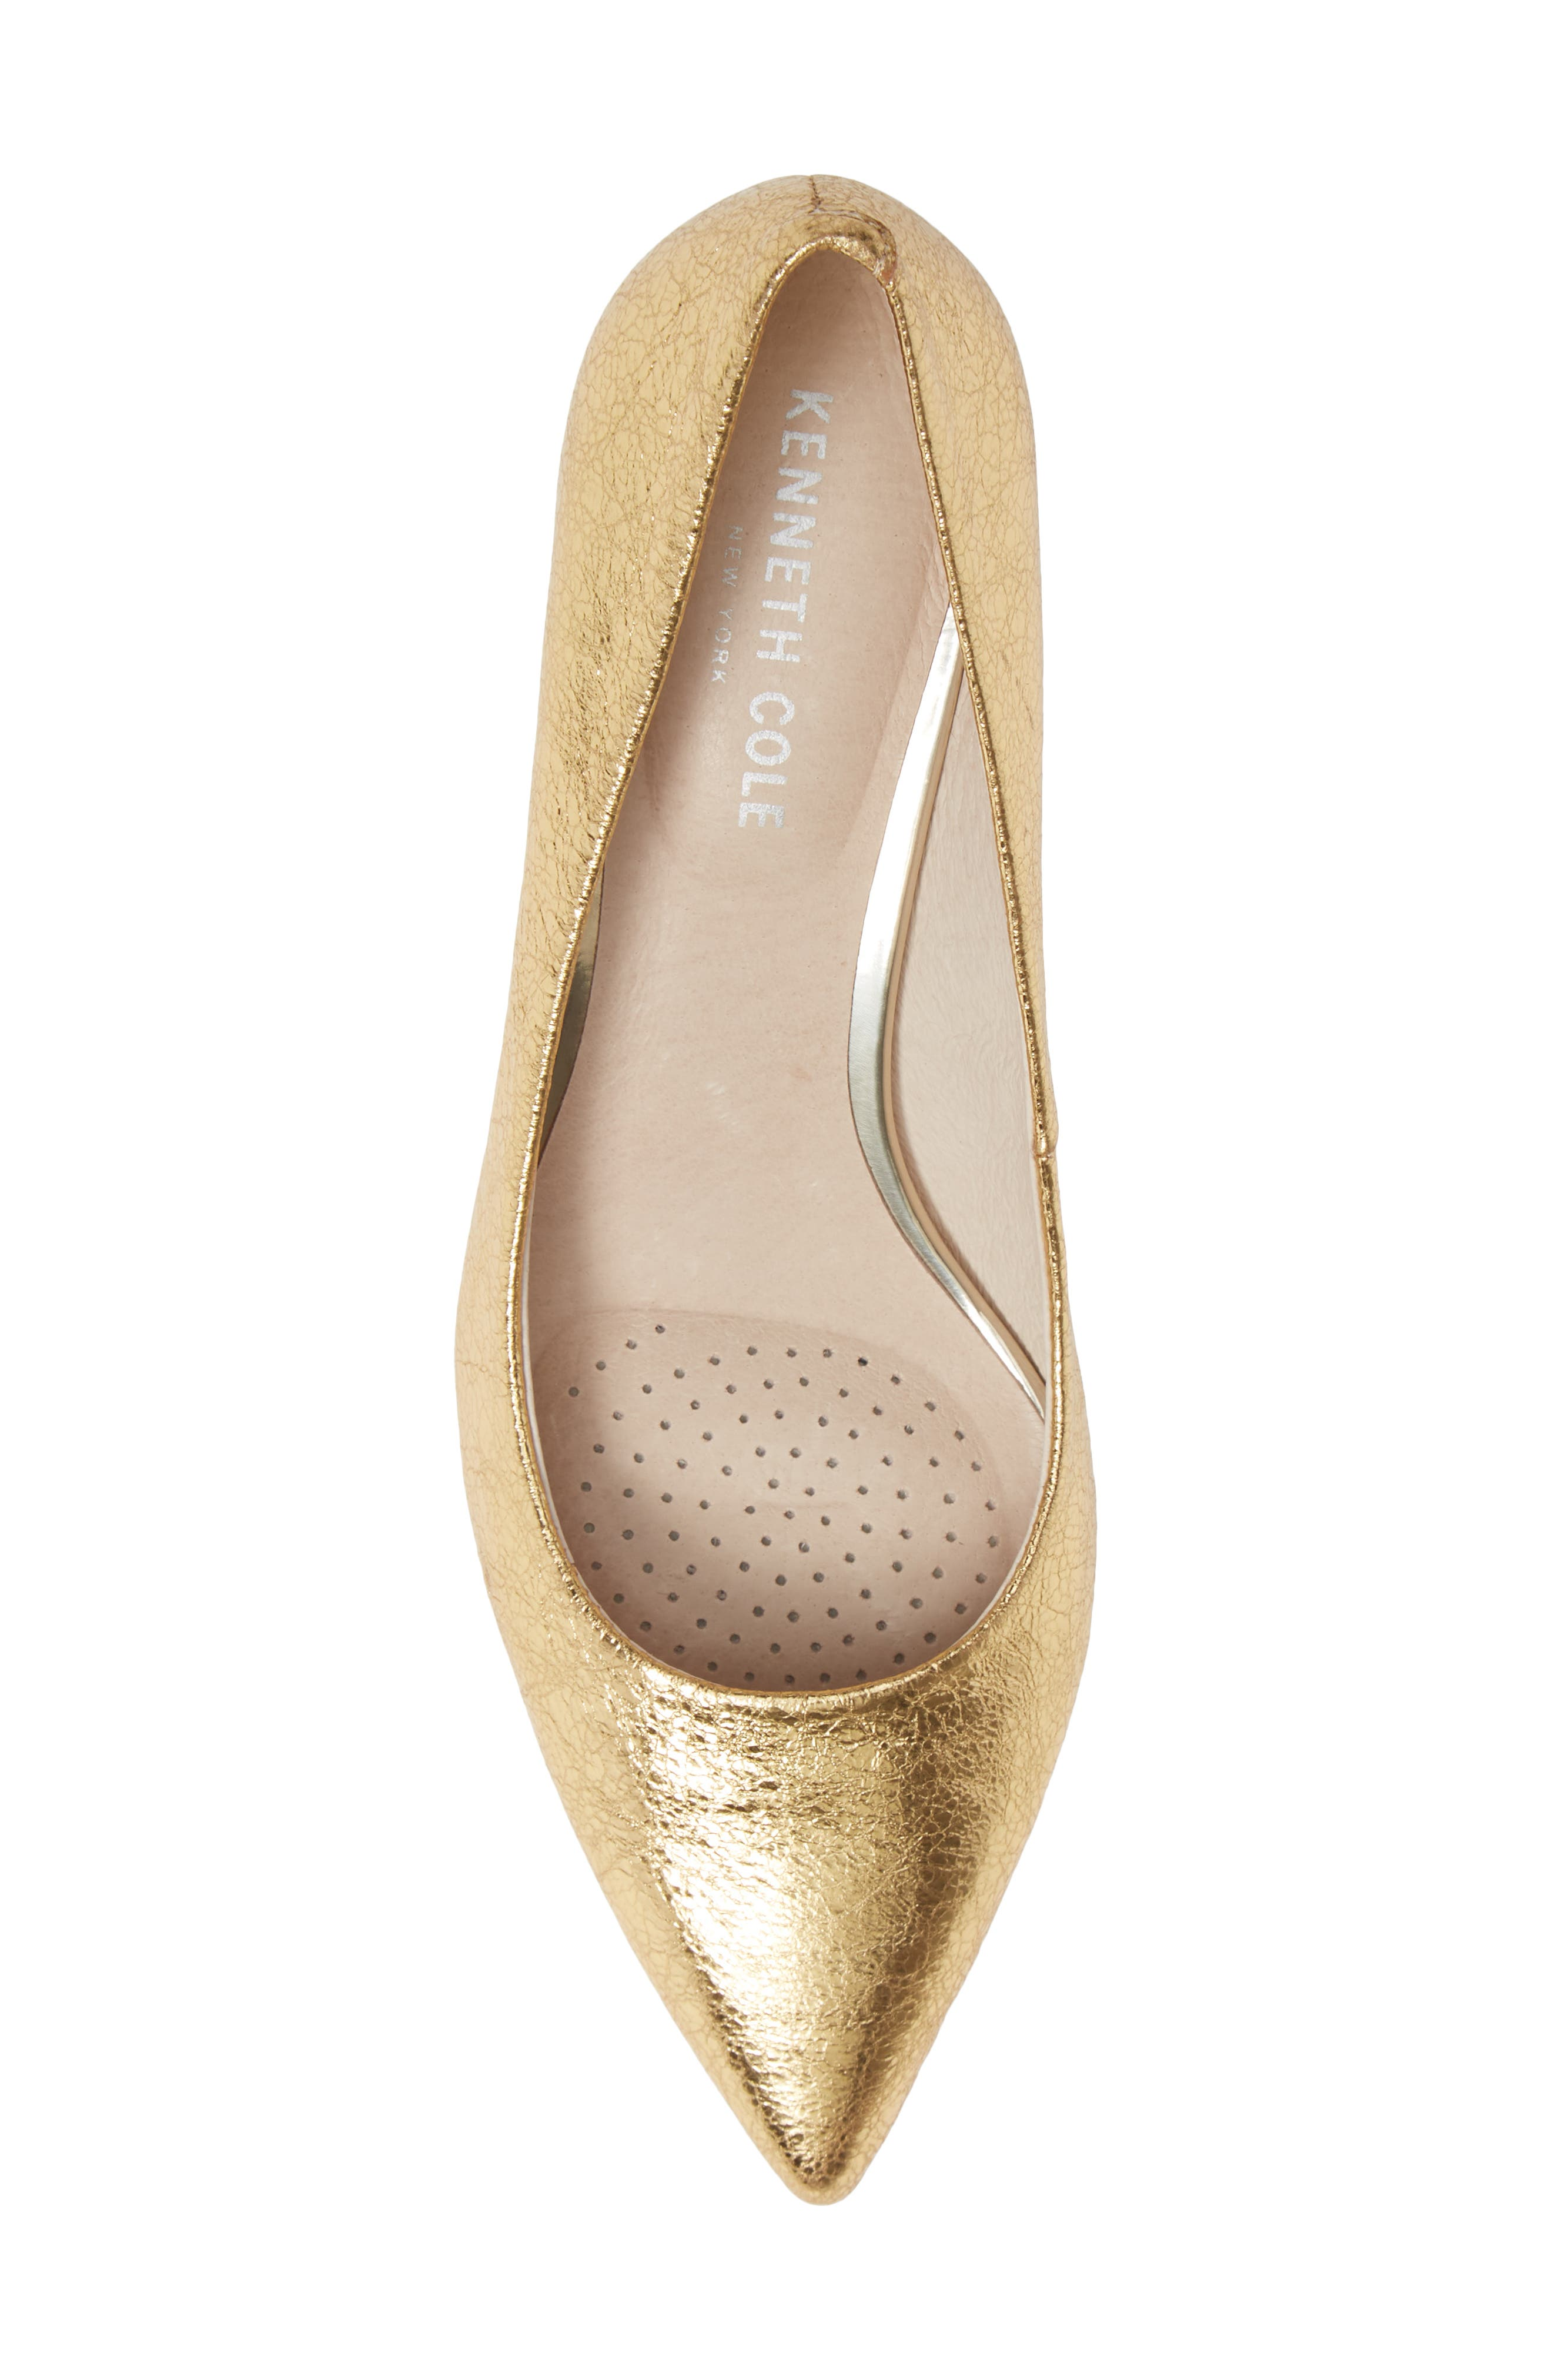 Riley 50 Pump,                             Alternate thumbnail 5, color,                             YELLOW GOLD LEATHER